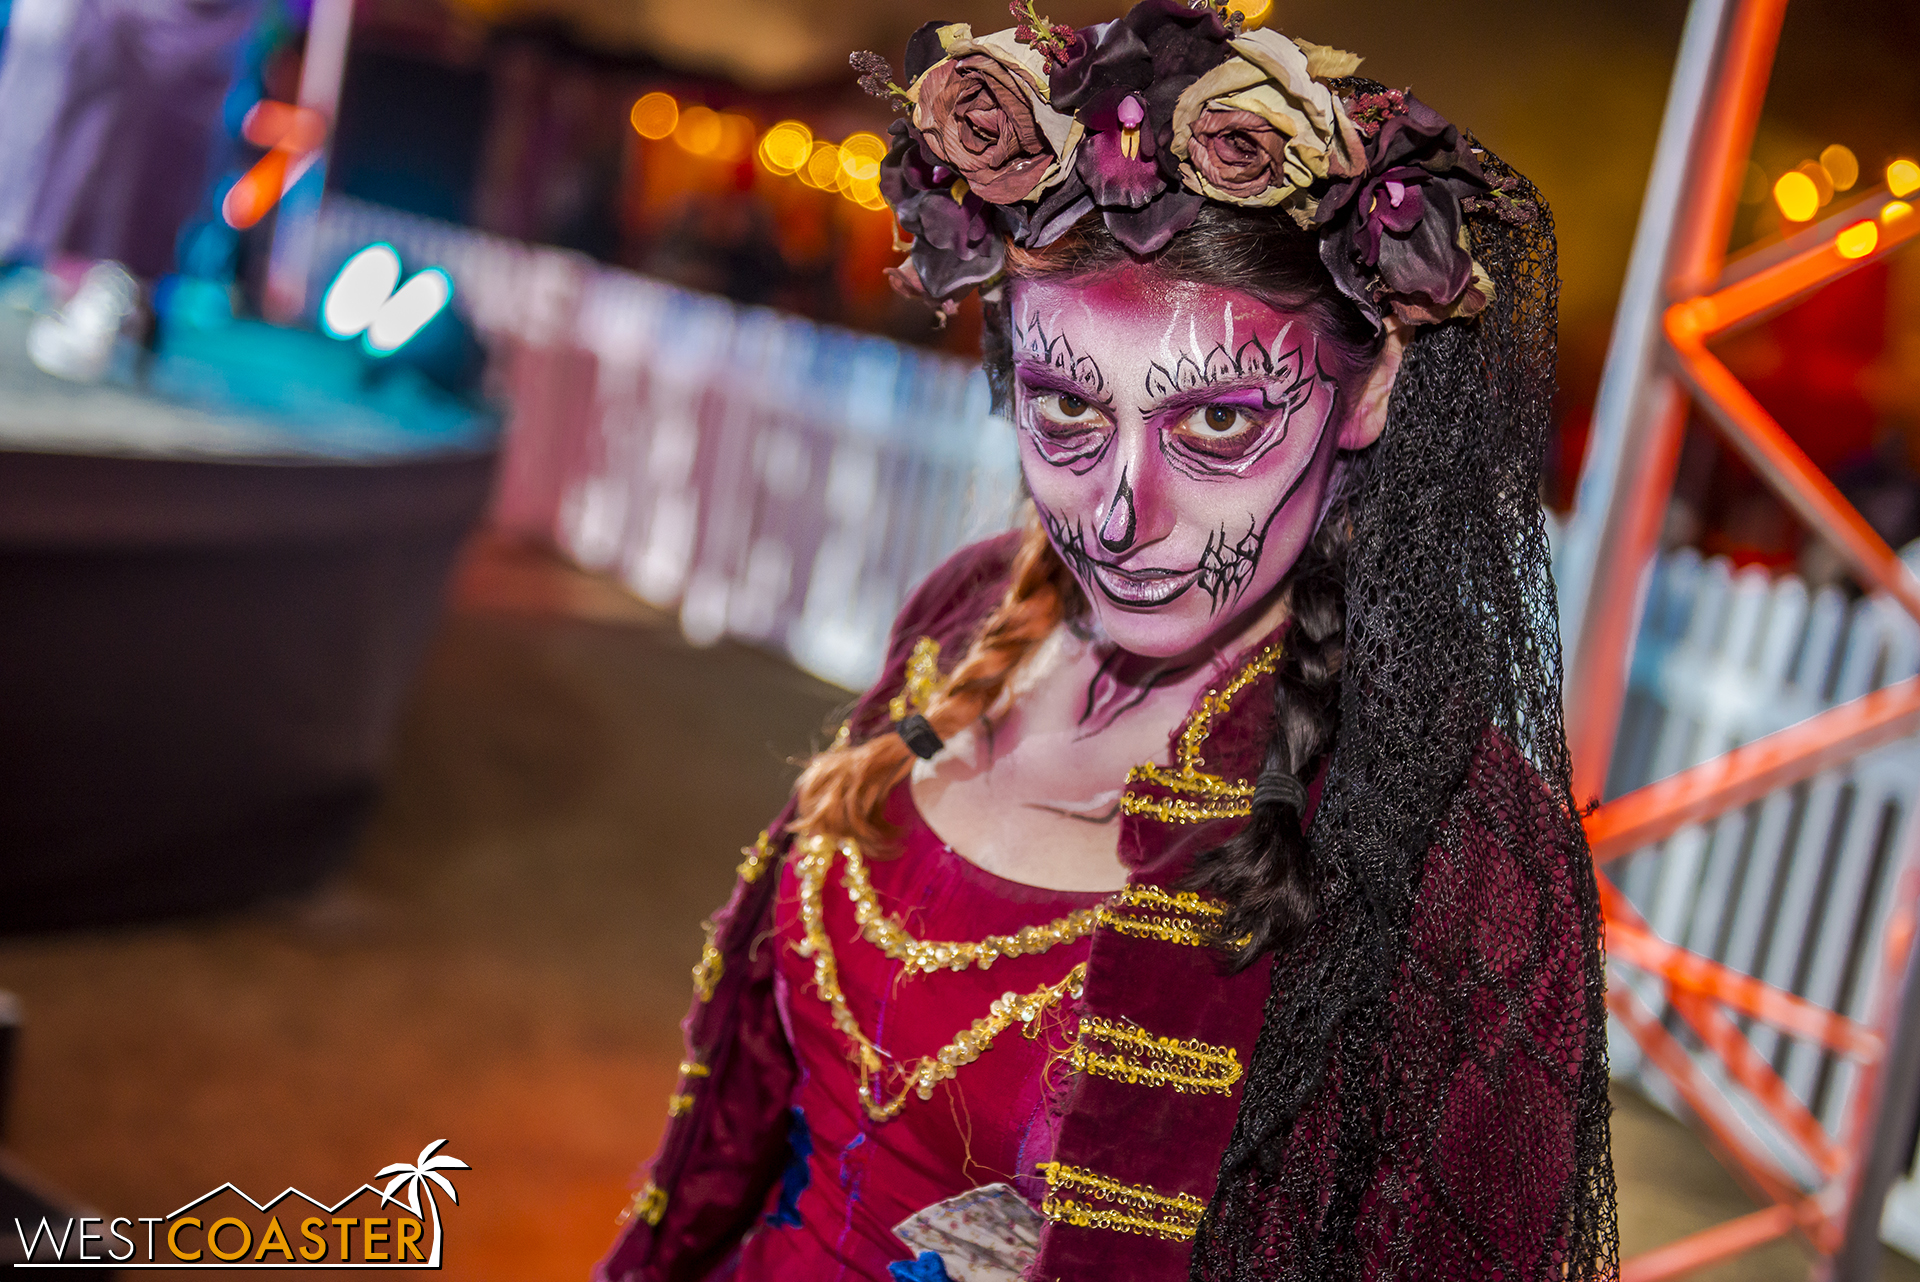 Of course, there were plenty of actual Dark Harbor talent on hand too.